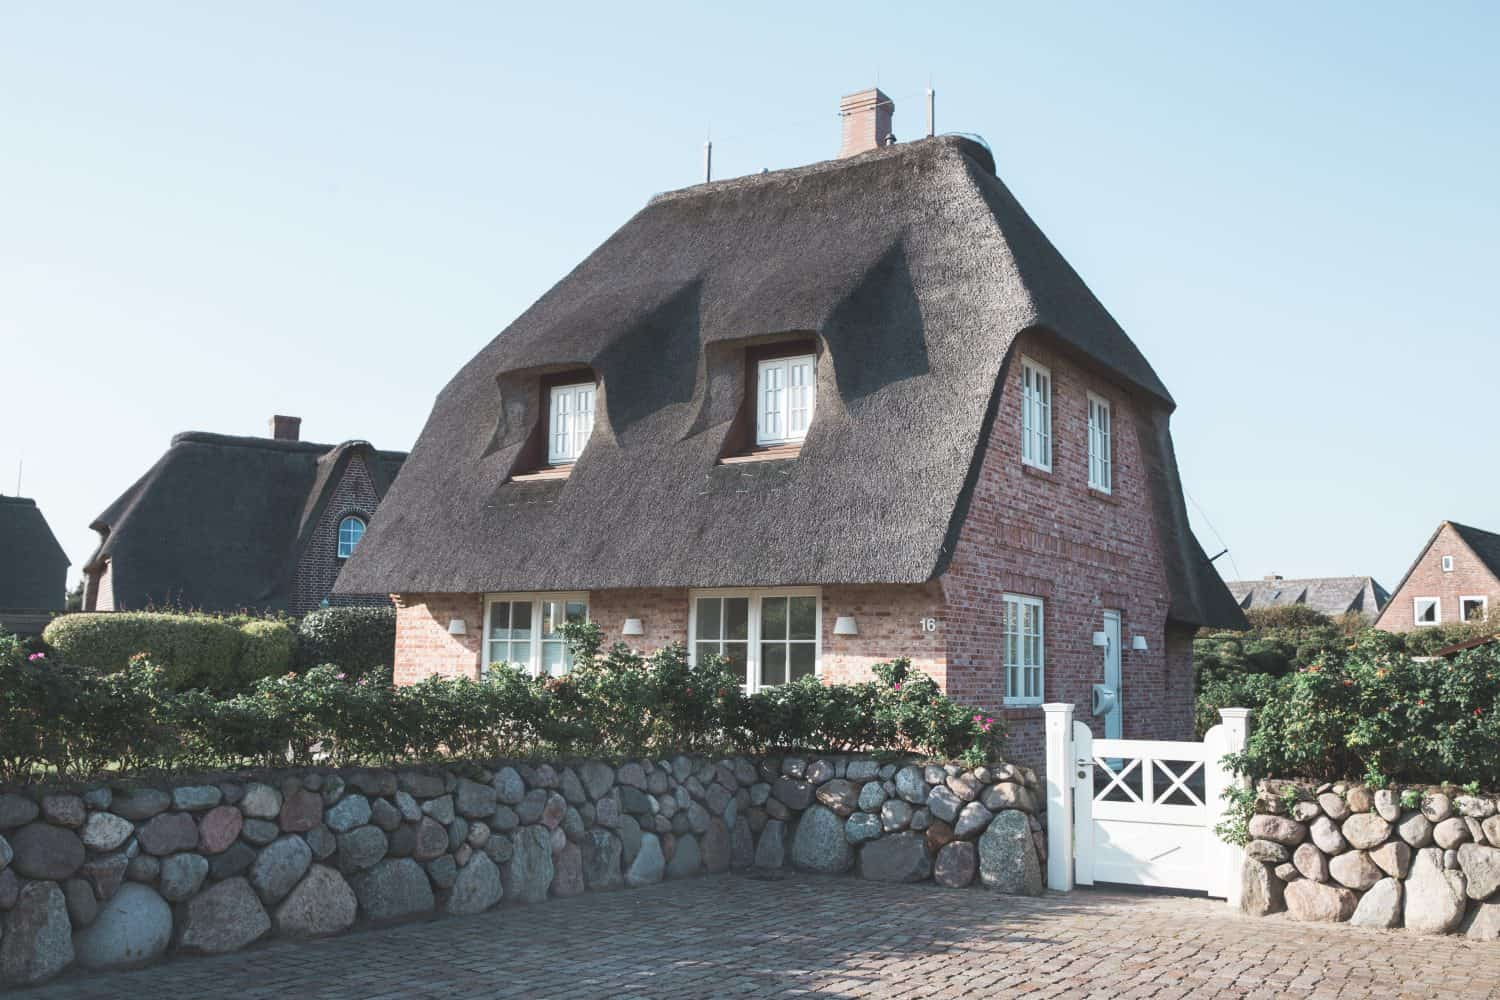 Traditional brick and thatched roof house in Sylt, Germany